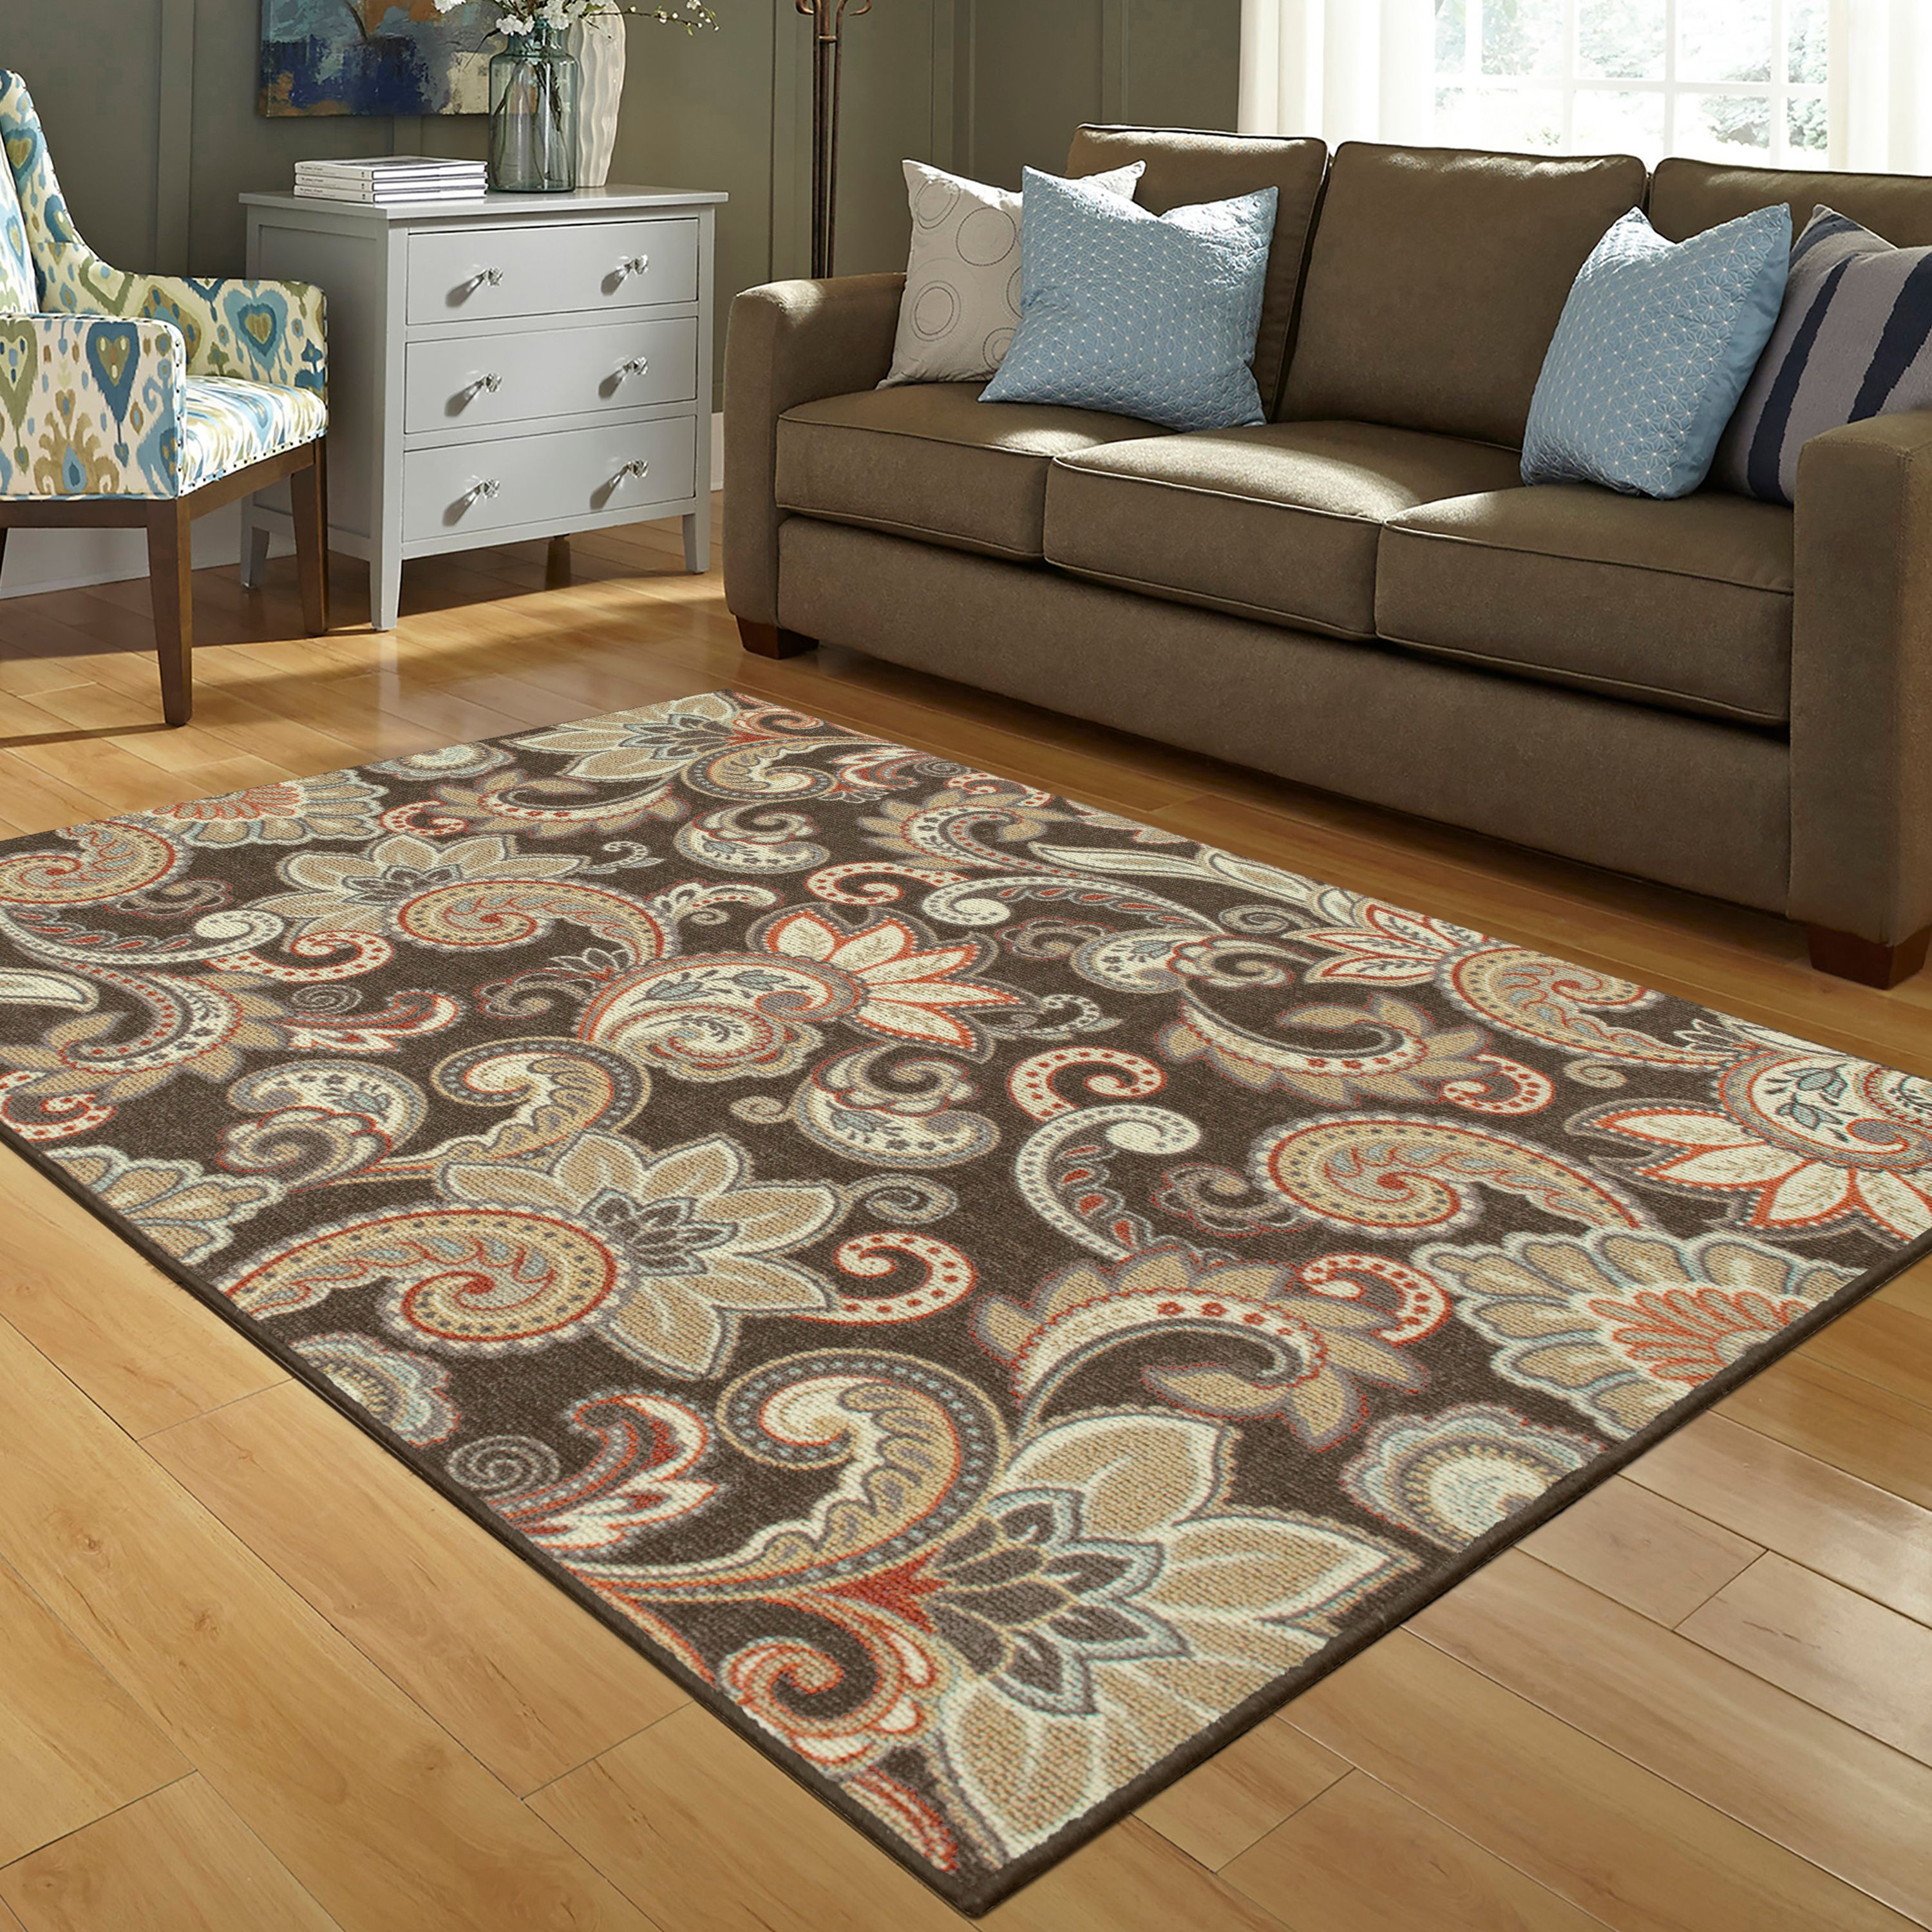 better homes and gardens brown paisley berber printed area rugs or Berber Area Rugs